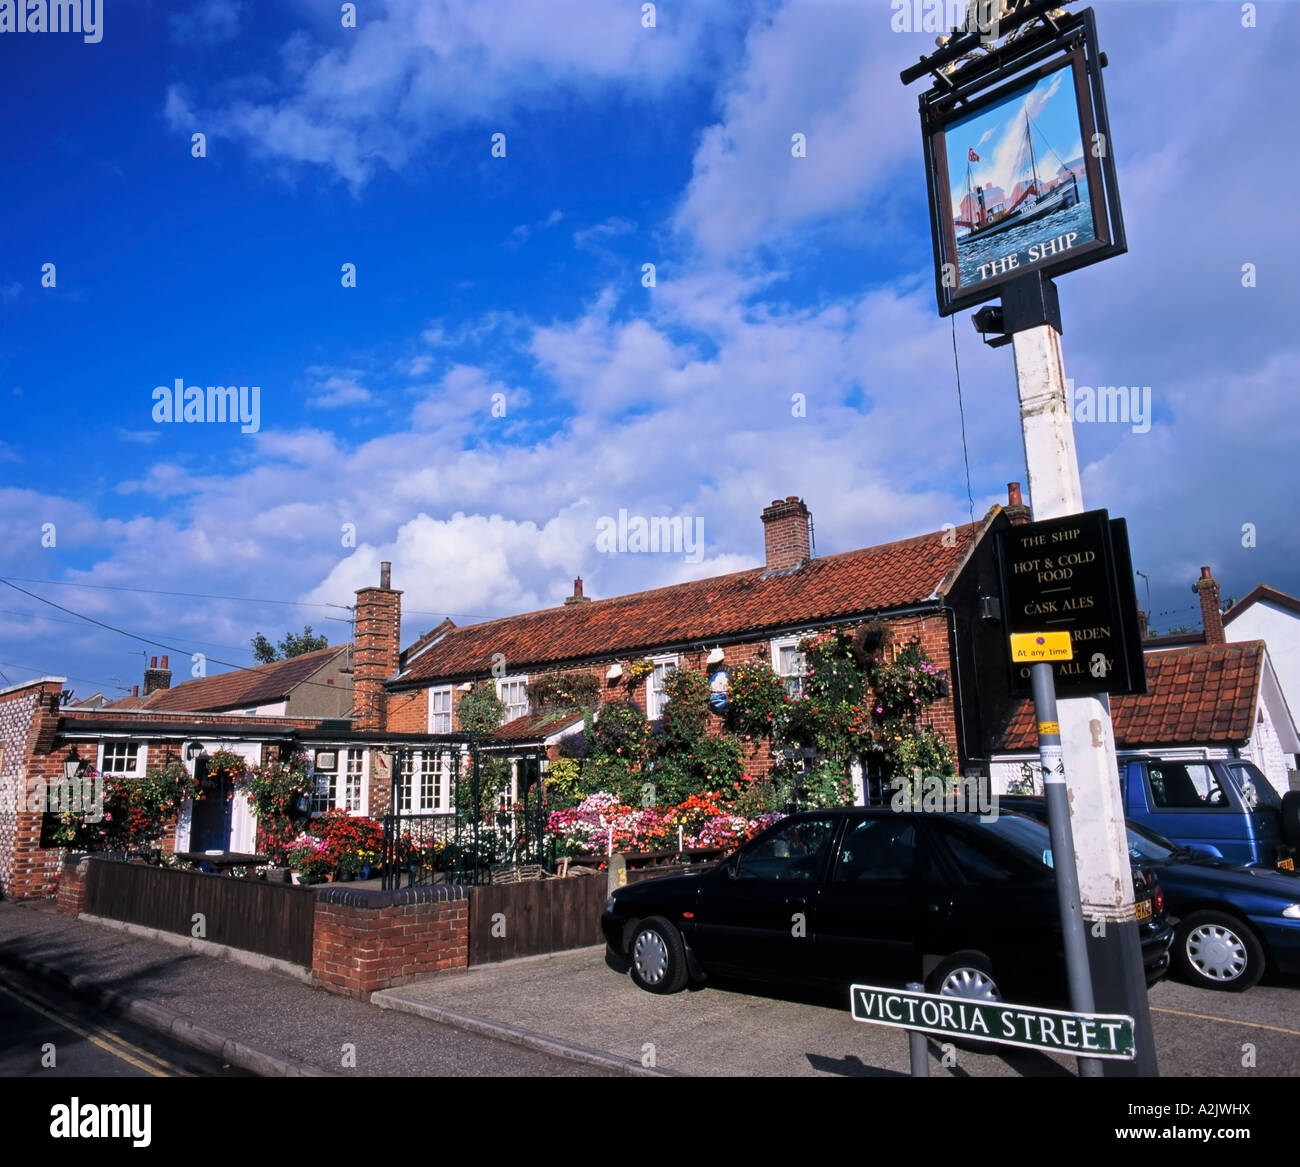 The Ship Traditional English Pub Caister Great Yarmouth Norfolk England Great Britain Stock Photo